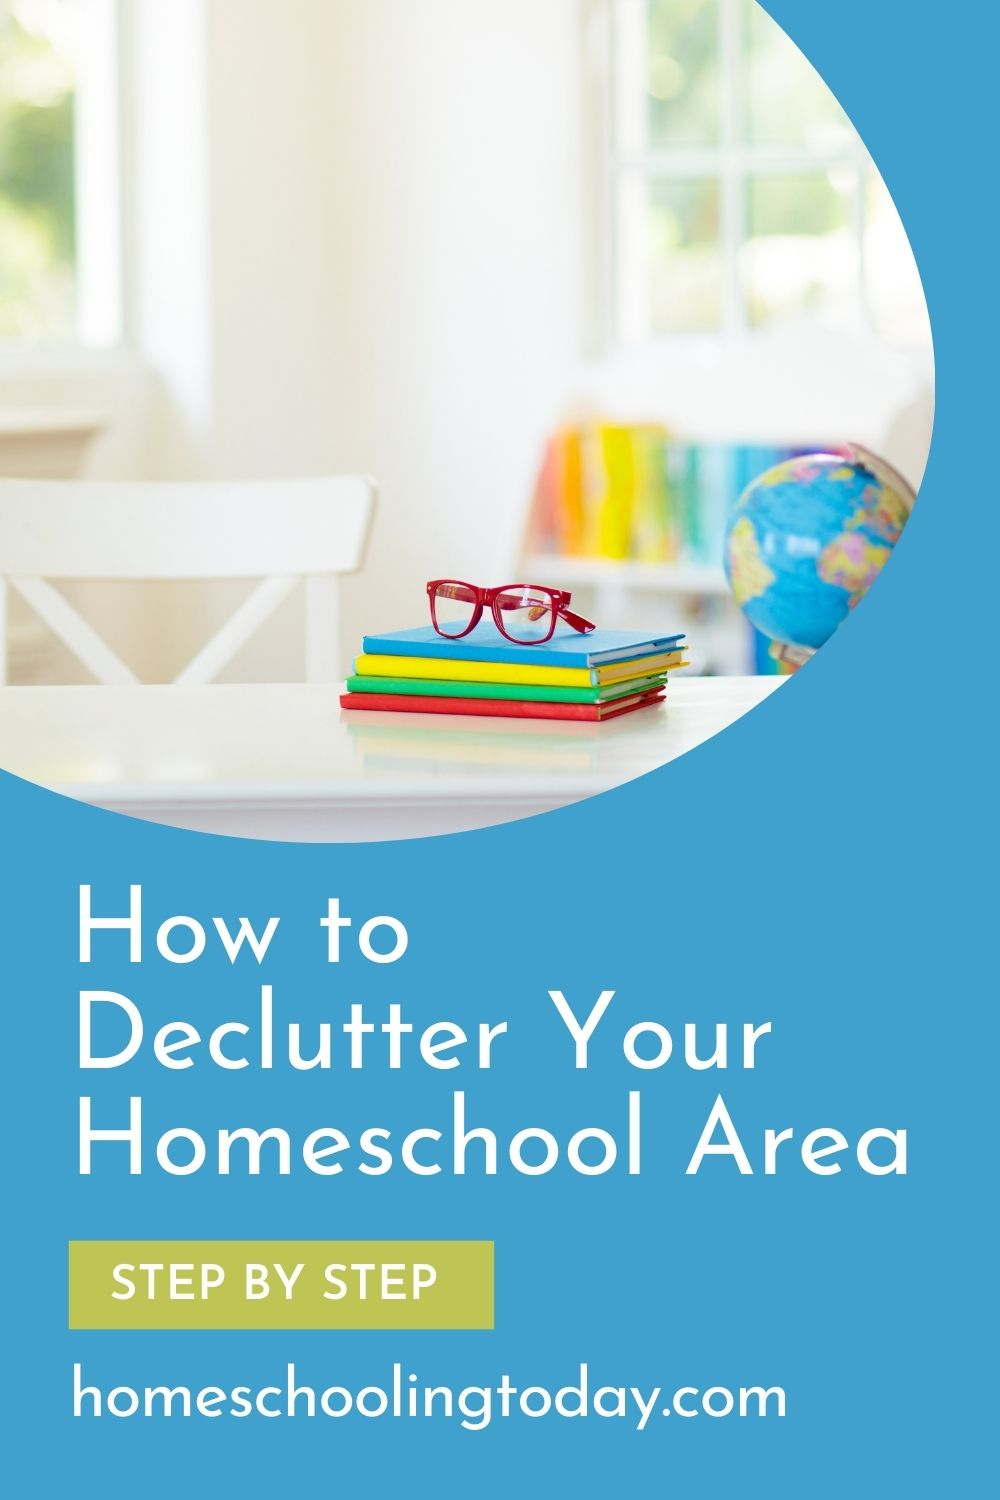 Pinterest image for how to declutter your homeschool area